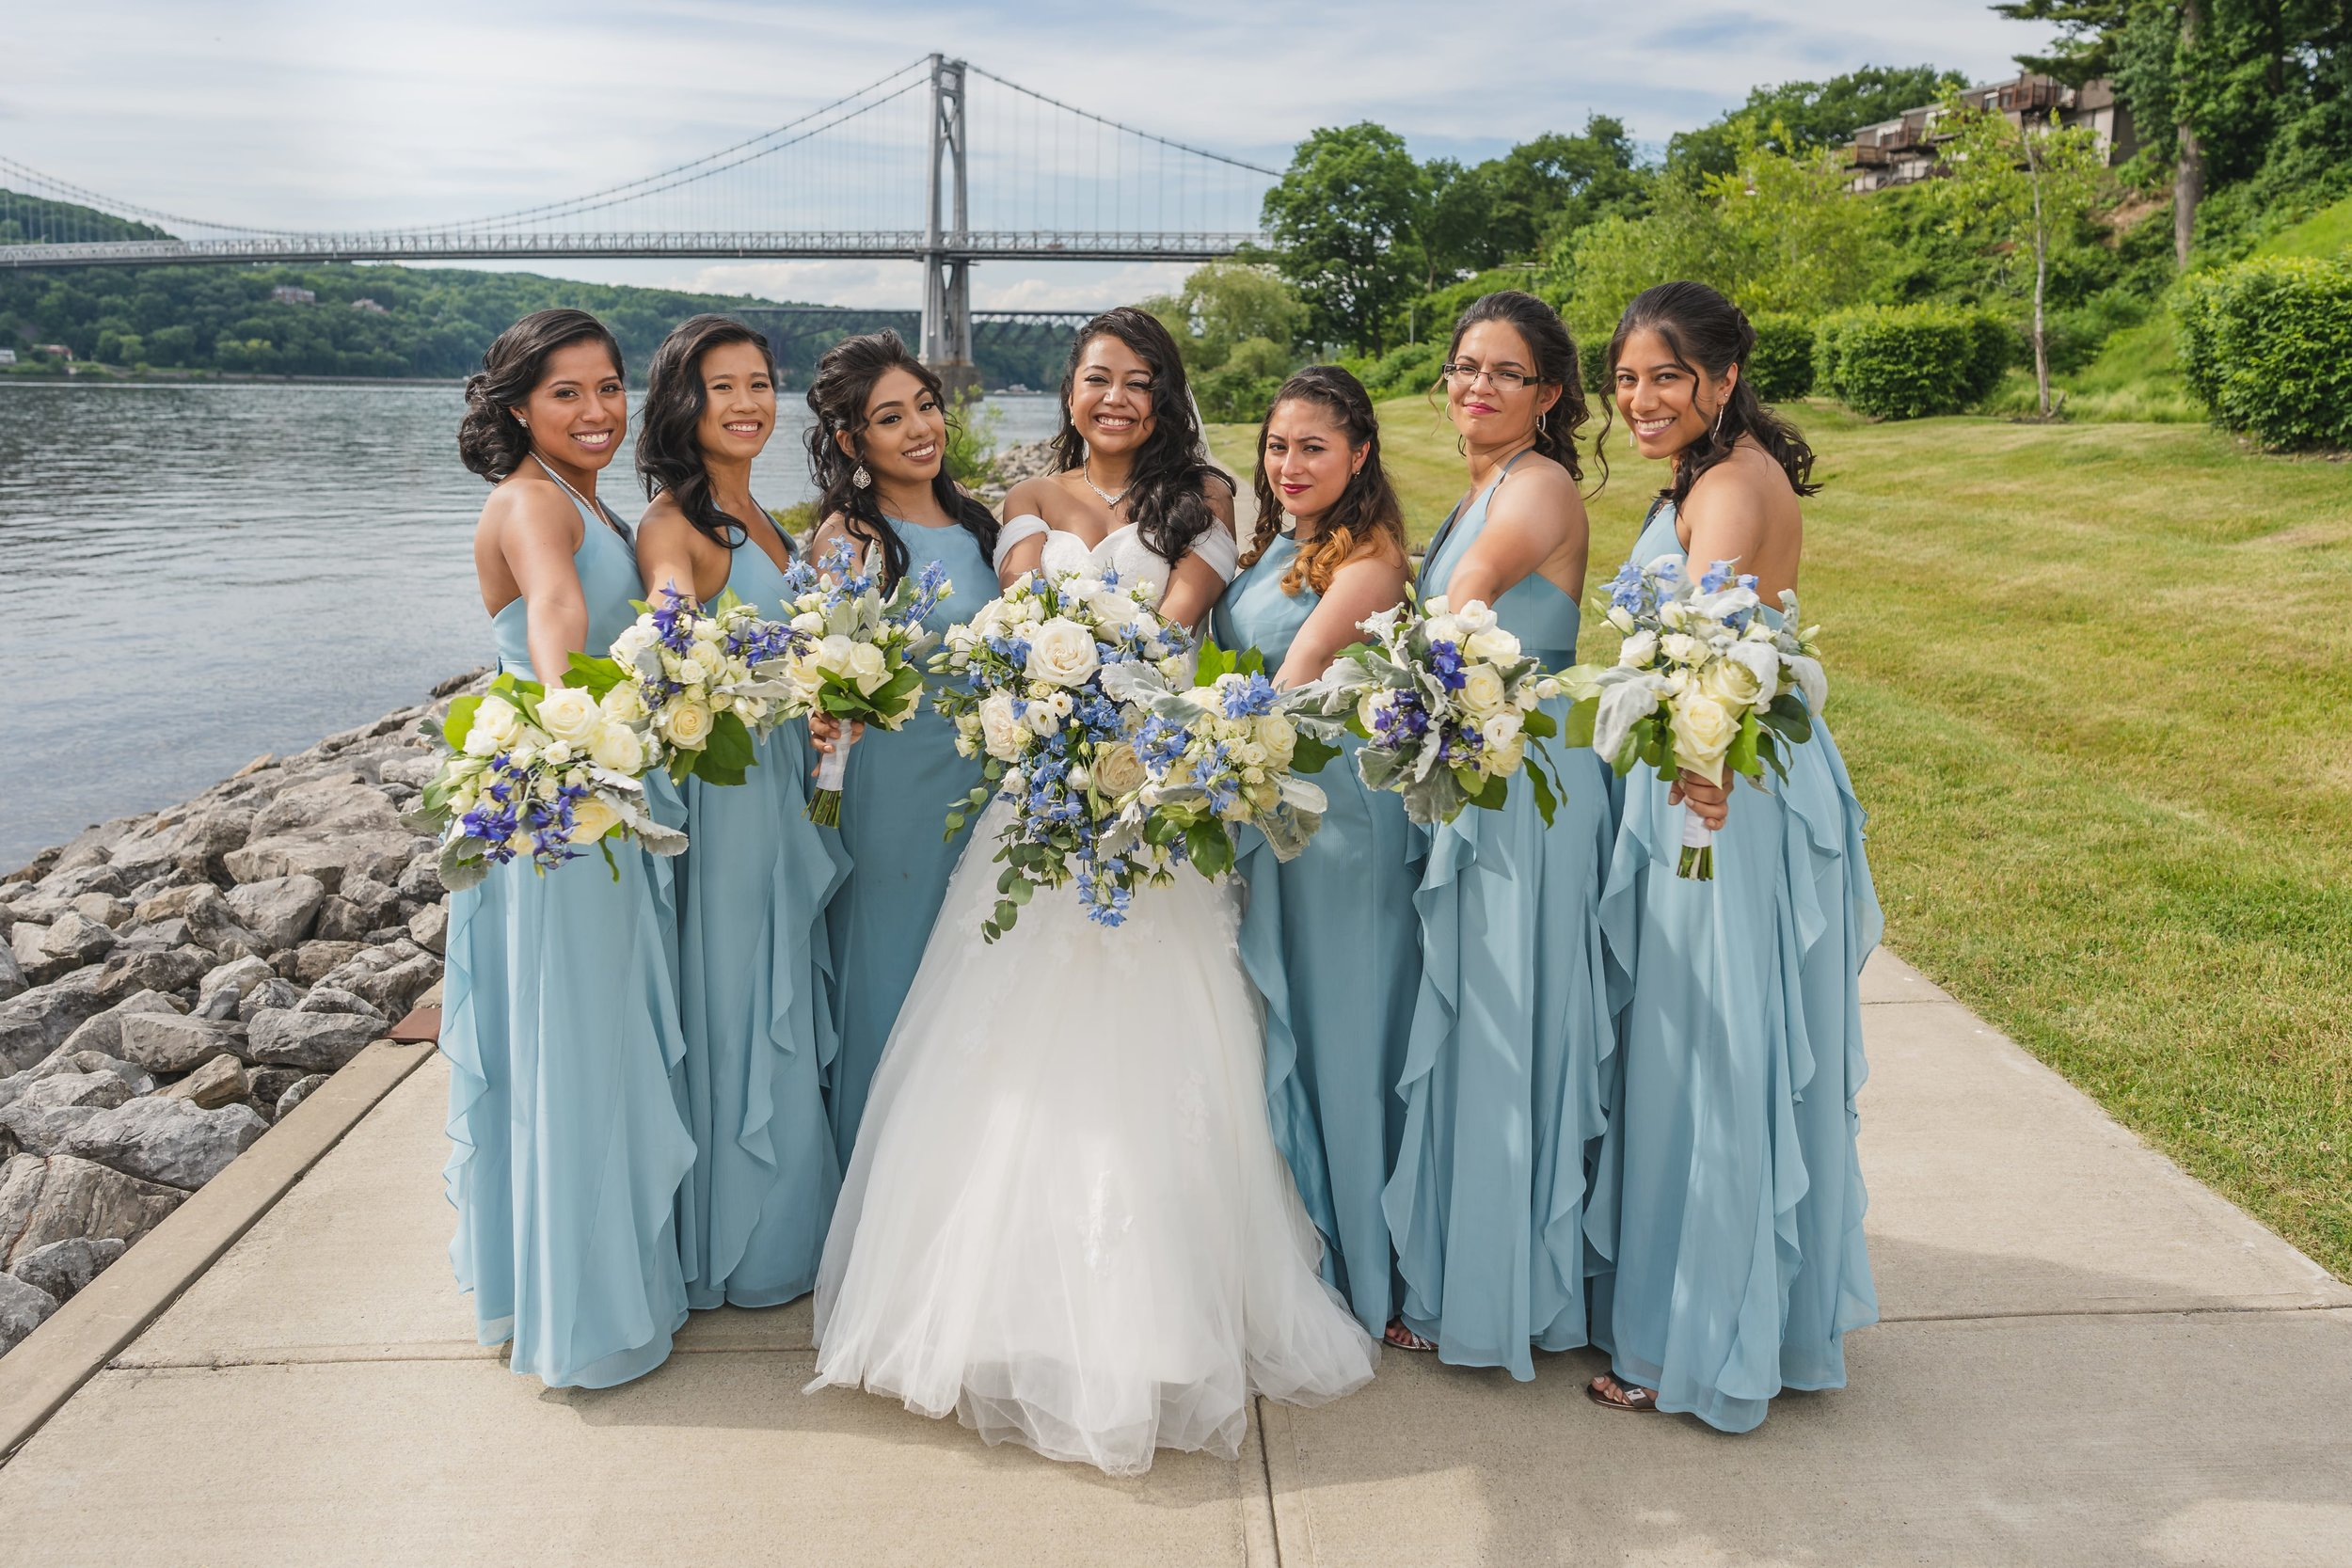 How to choose bridesmaid dresses everyone will love - Bride with her bridesmaids holding flowers.